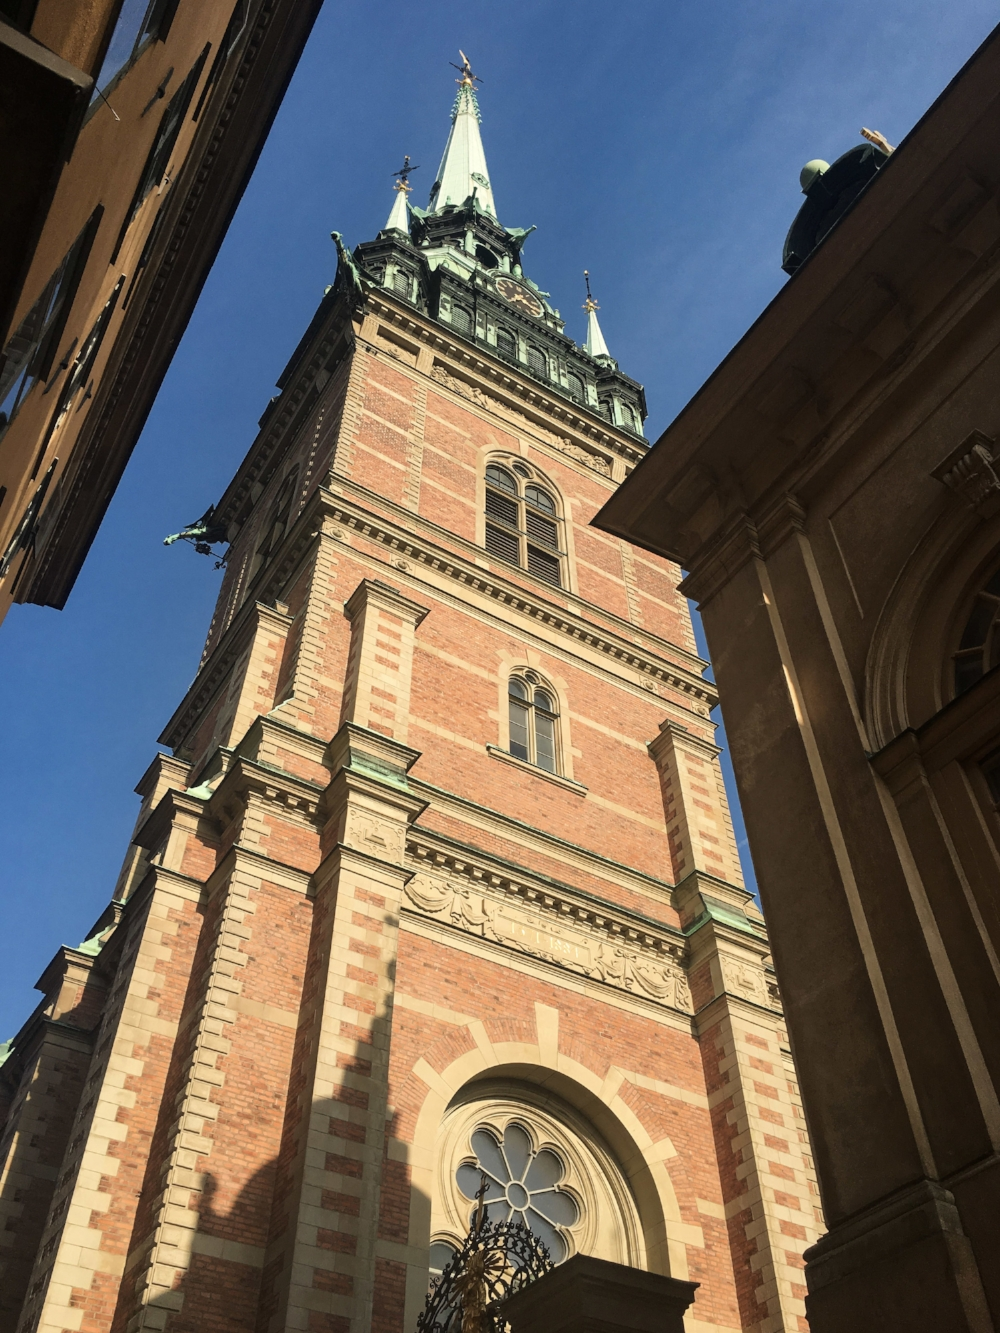 curio.trips.sweden.stockholm.gamla.stan.church.iphone.jpg